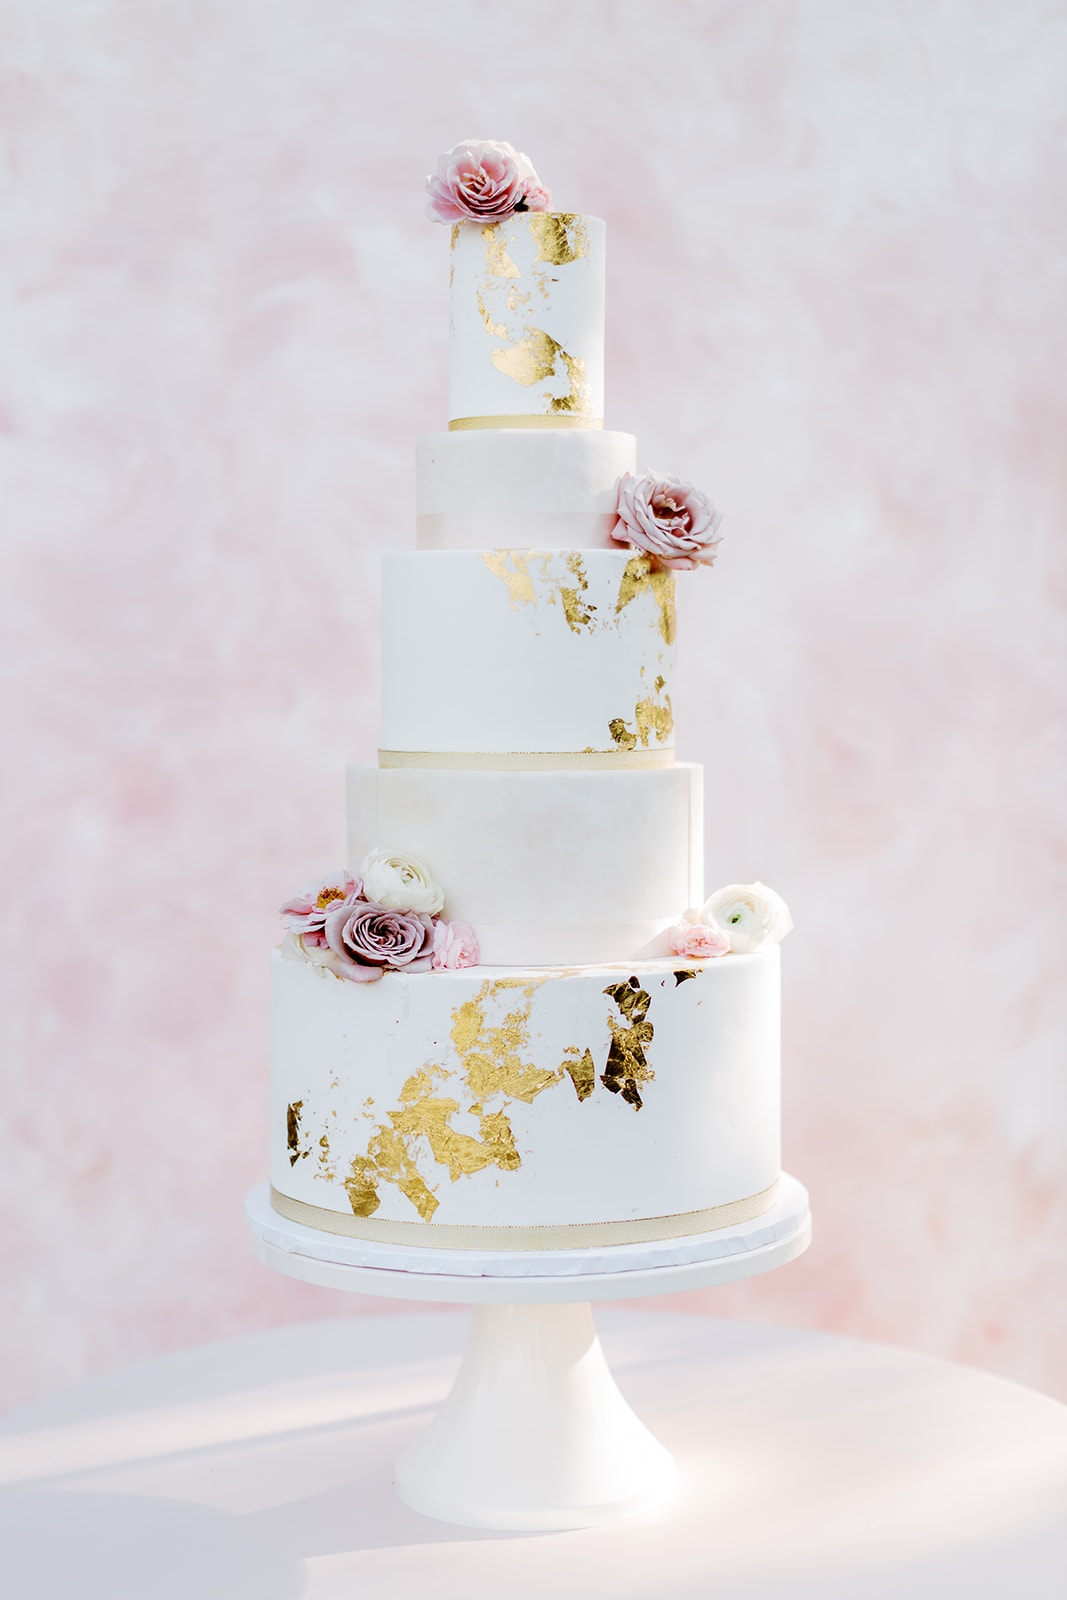 Tasty Bakery three tiered wedding cake with Lindale Studios pink backdrop